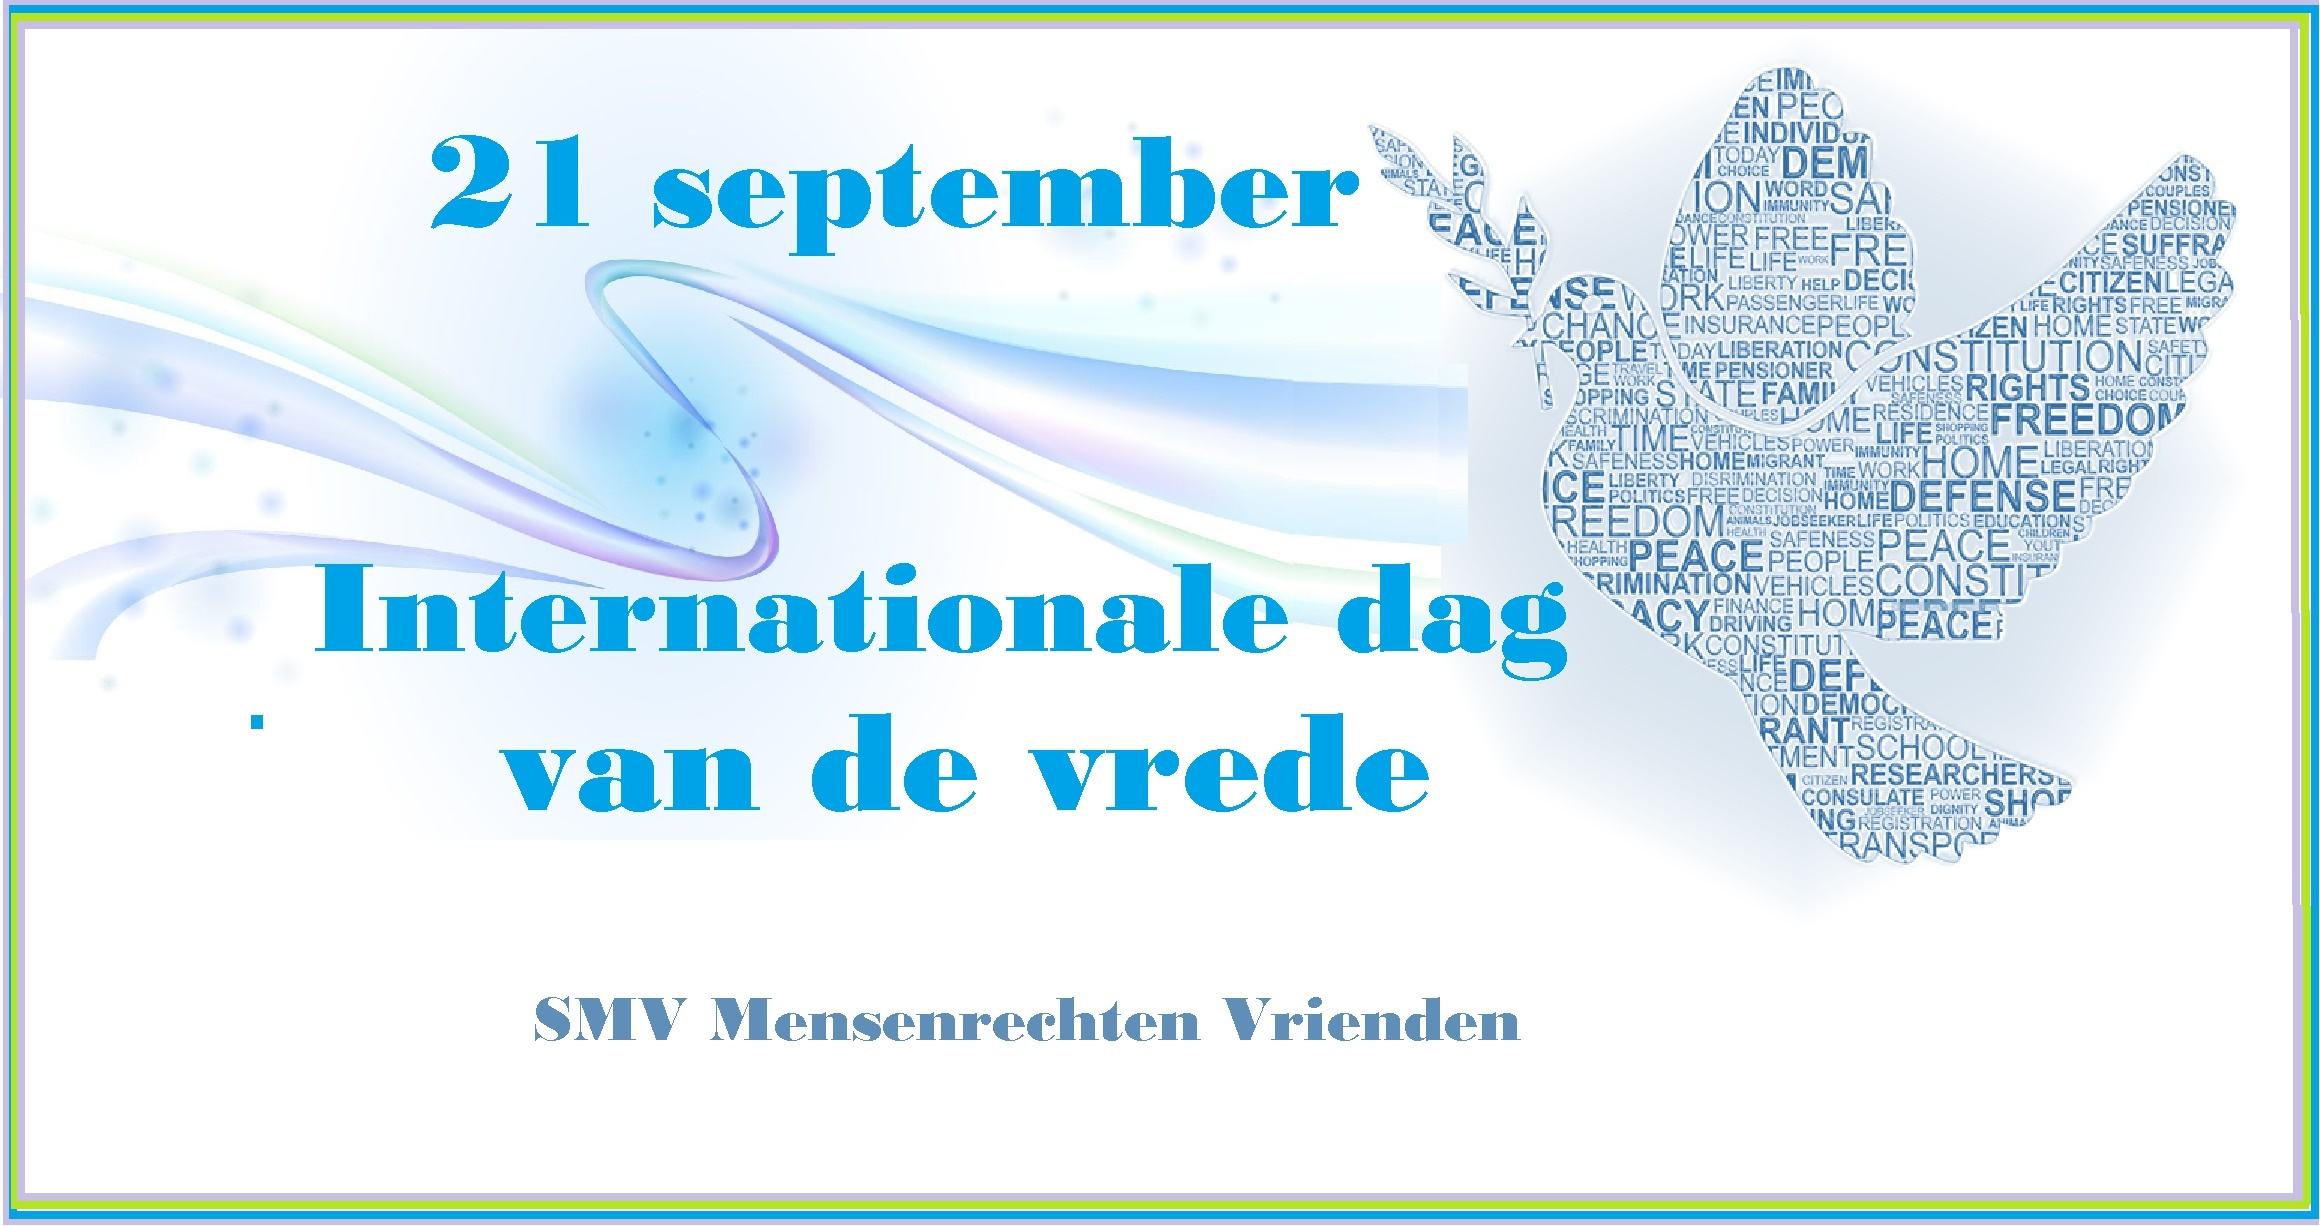 21 september, Internationale dag van de Vrede